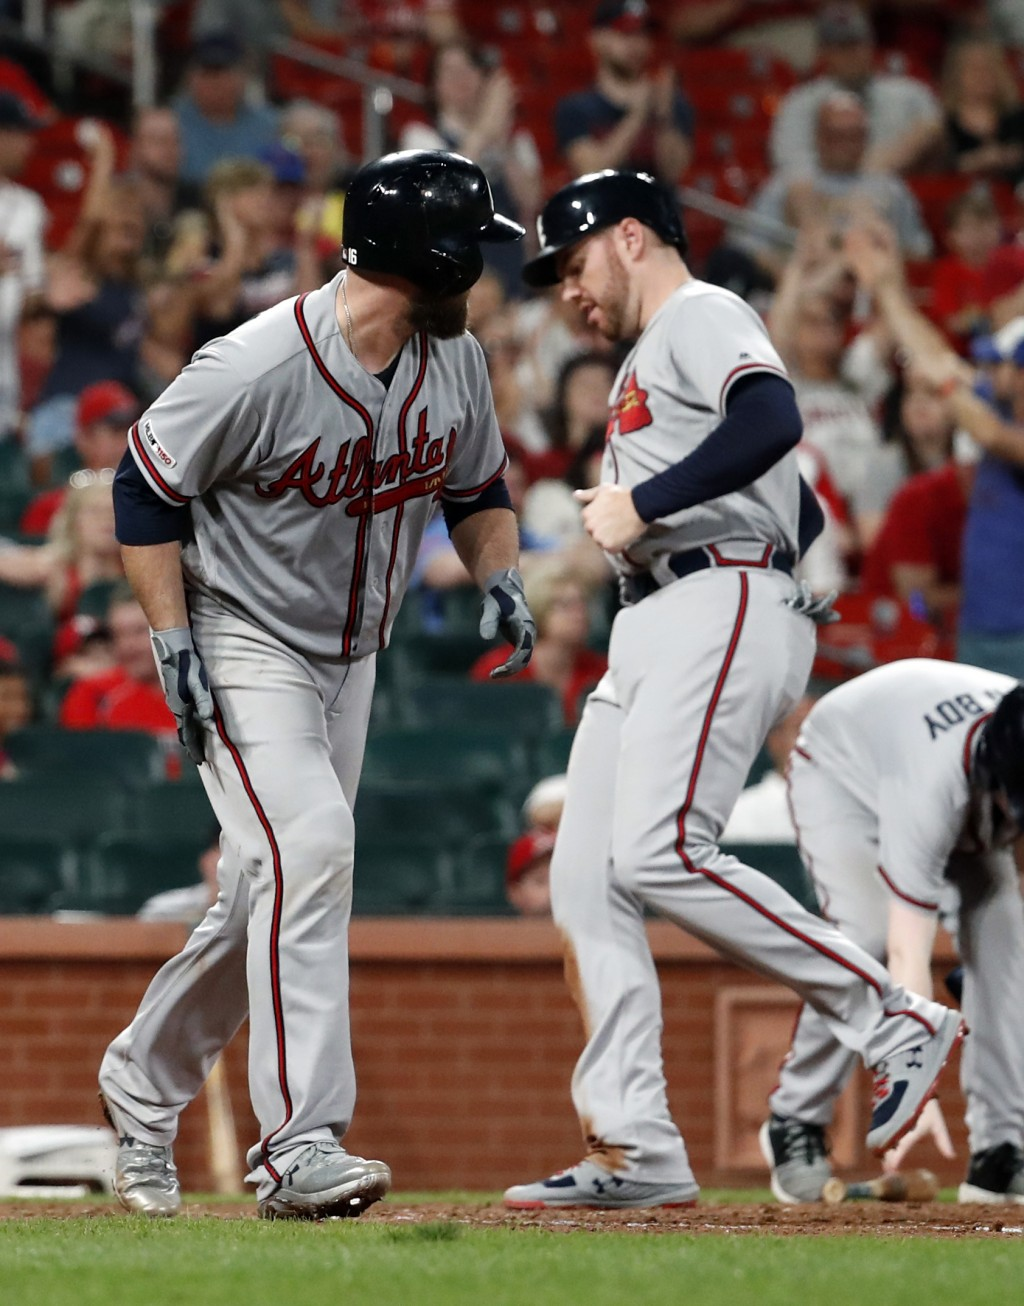 Atlanta Braves' Brian McCann, left, takes his base on a bases-loaded walk as Freddie Freeman scores during the 10th inning of a baseball game against